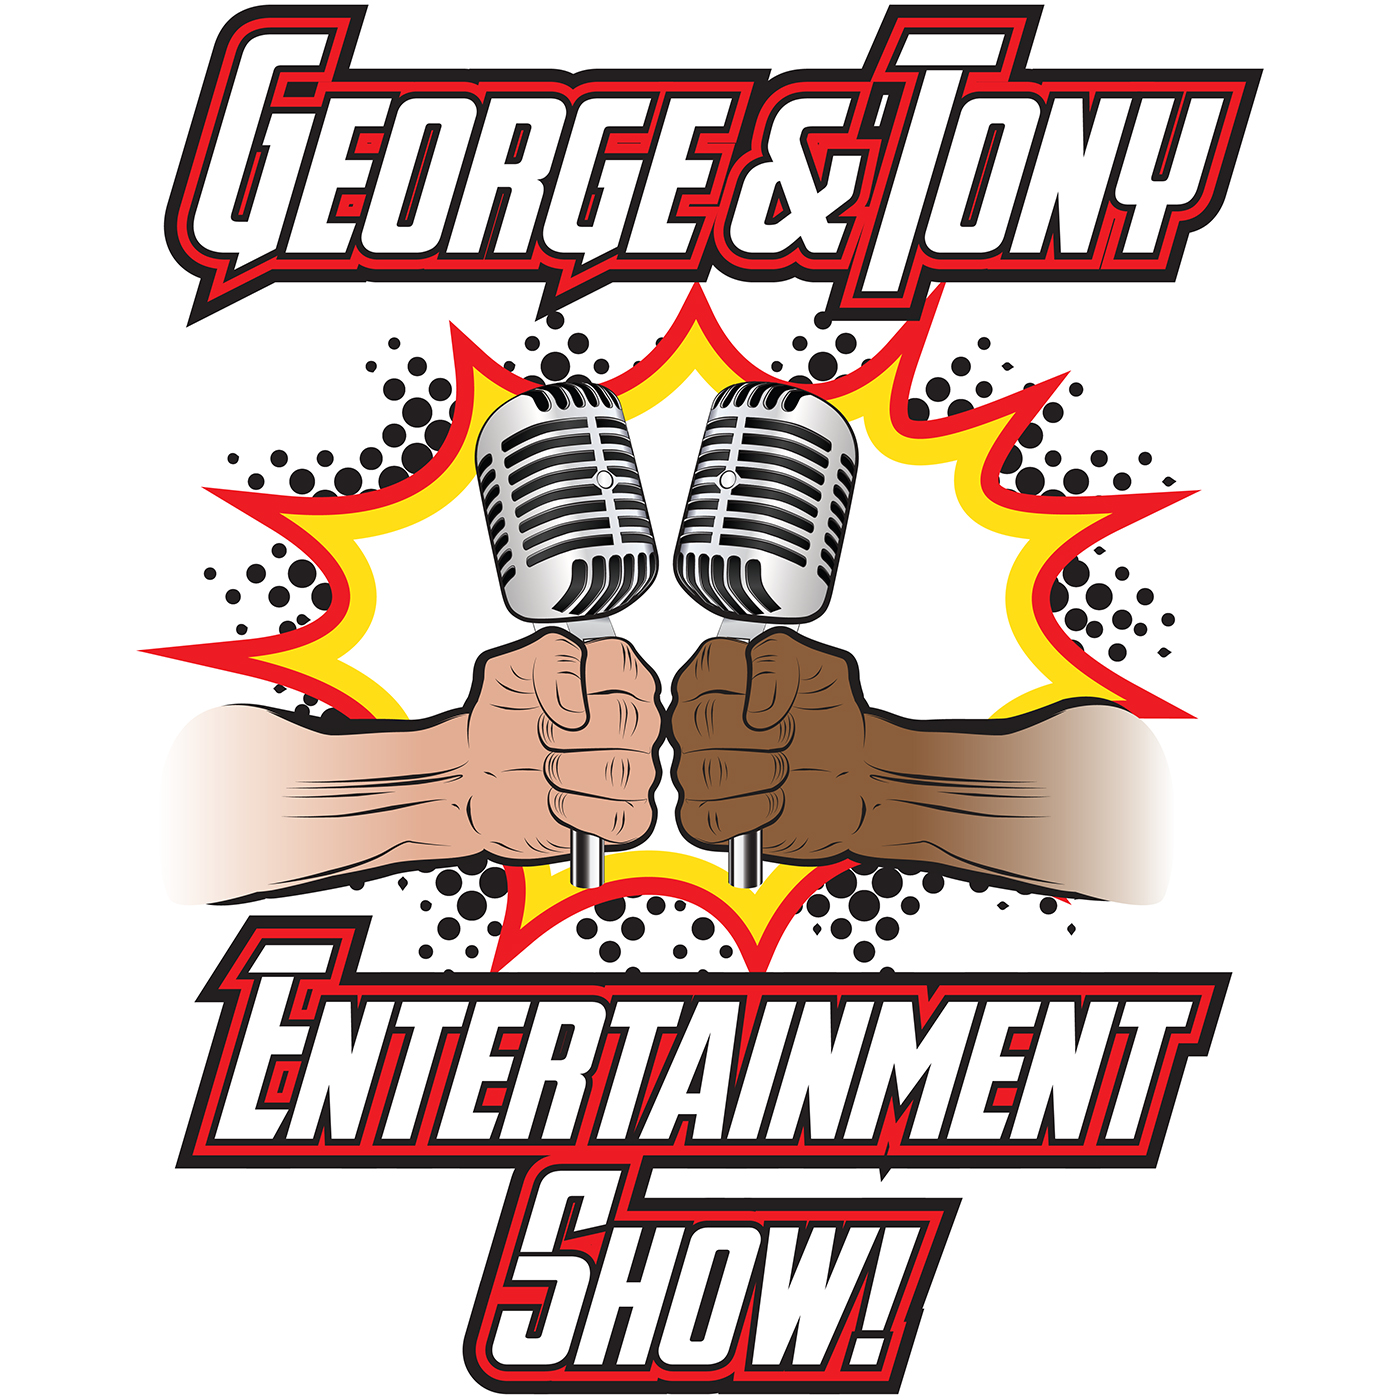 George and Tony Entertainment Show #59